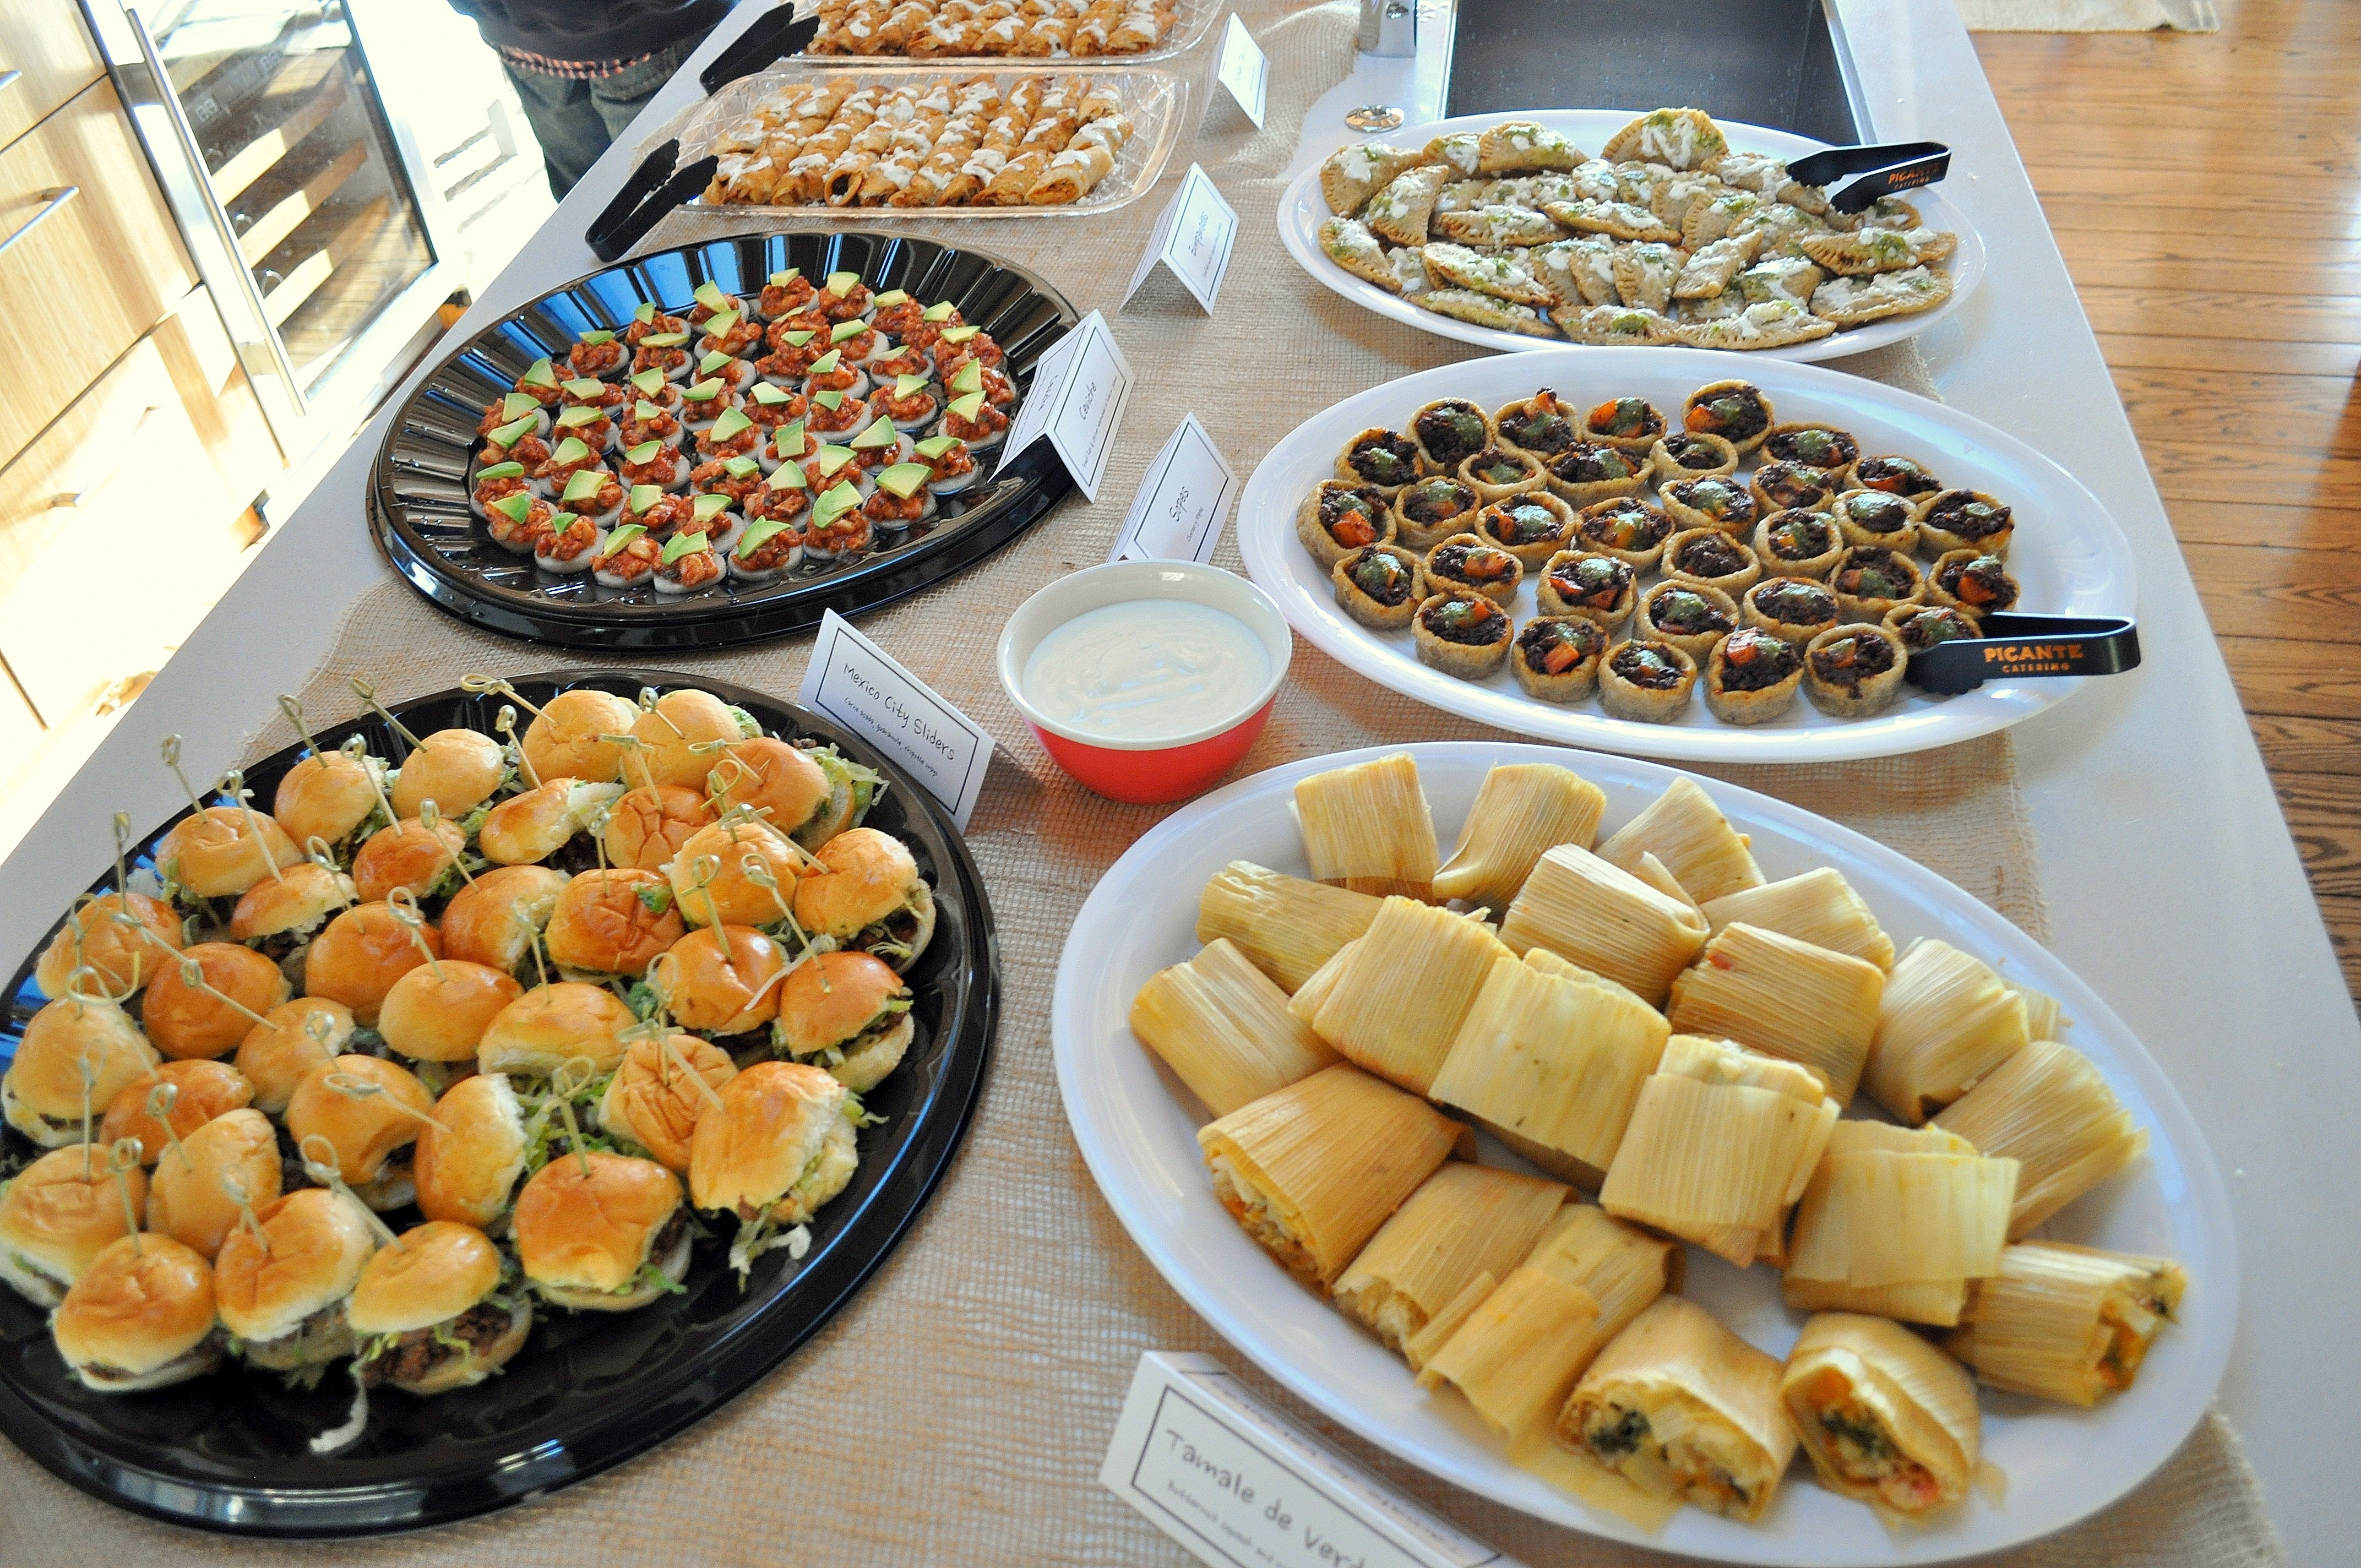 10 Stunning Baby Shower Food Ideas For Boy fall baby shower food ideas loversiq 3 2020